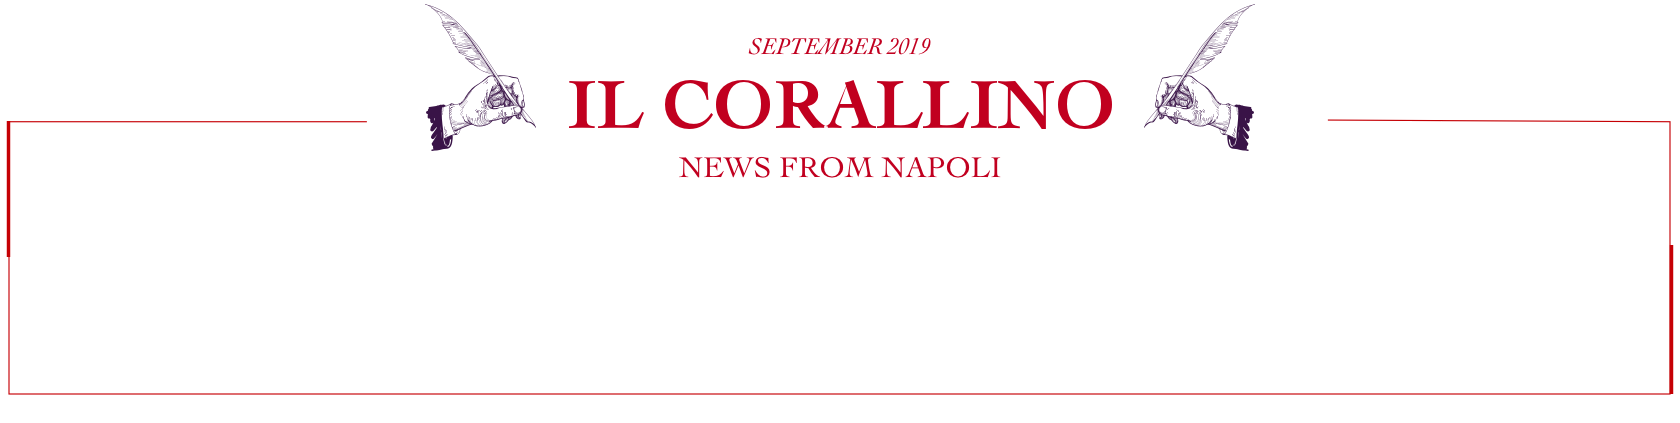 IL Corallino News From Napoli